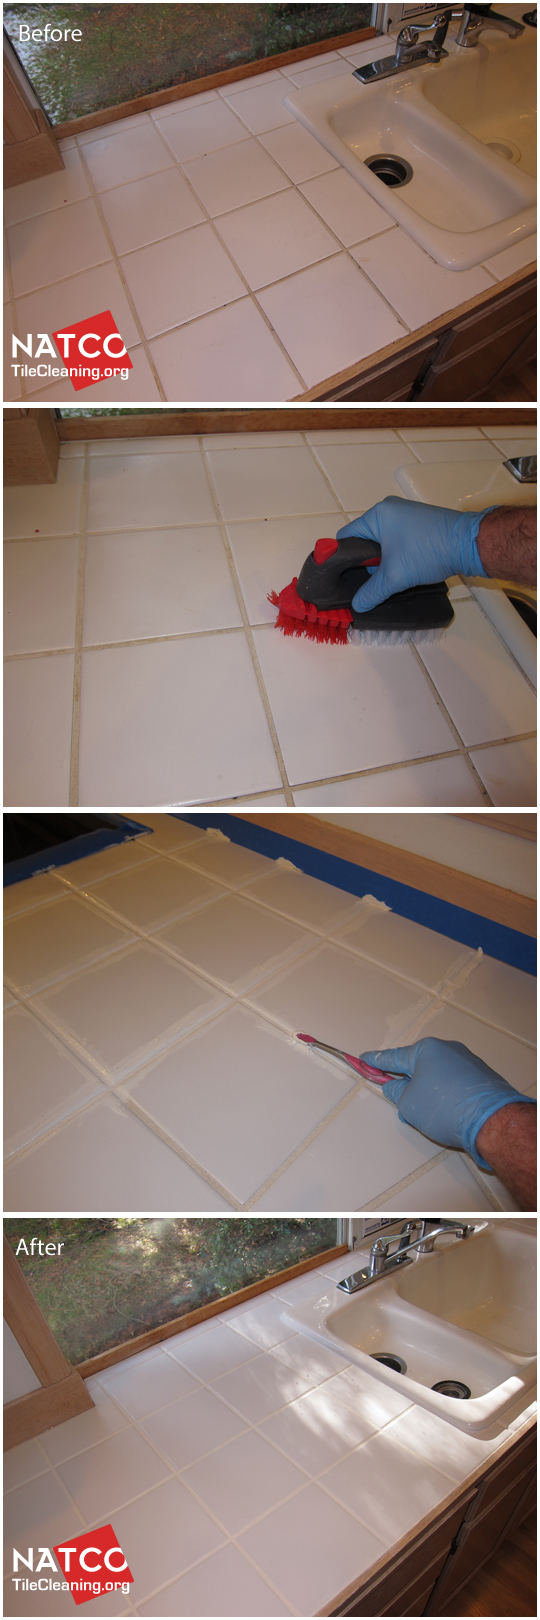 How To Clean Colorseal And Re A Tile Countertop With